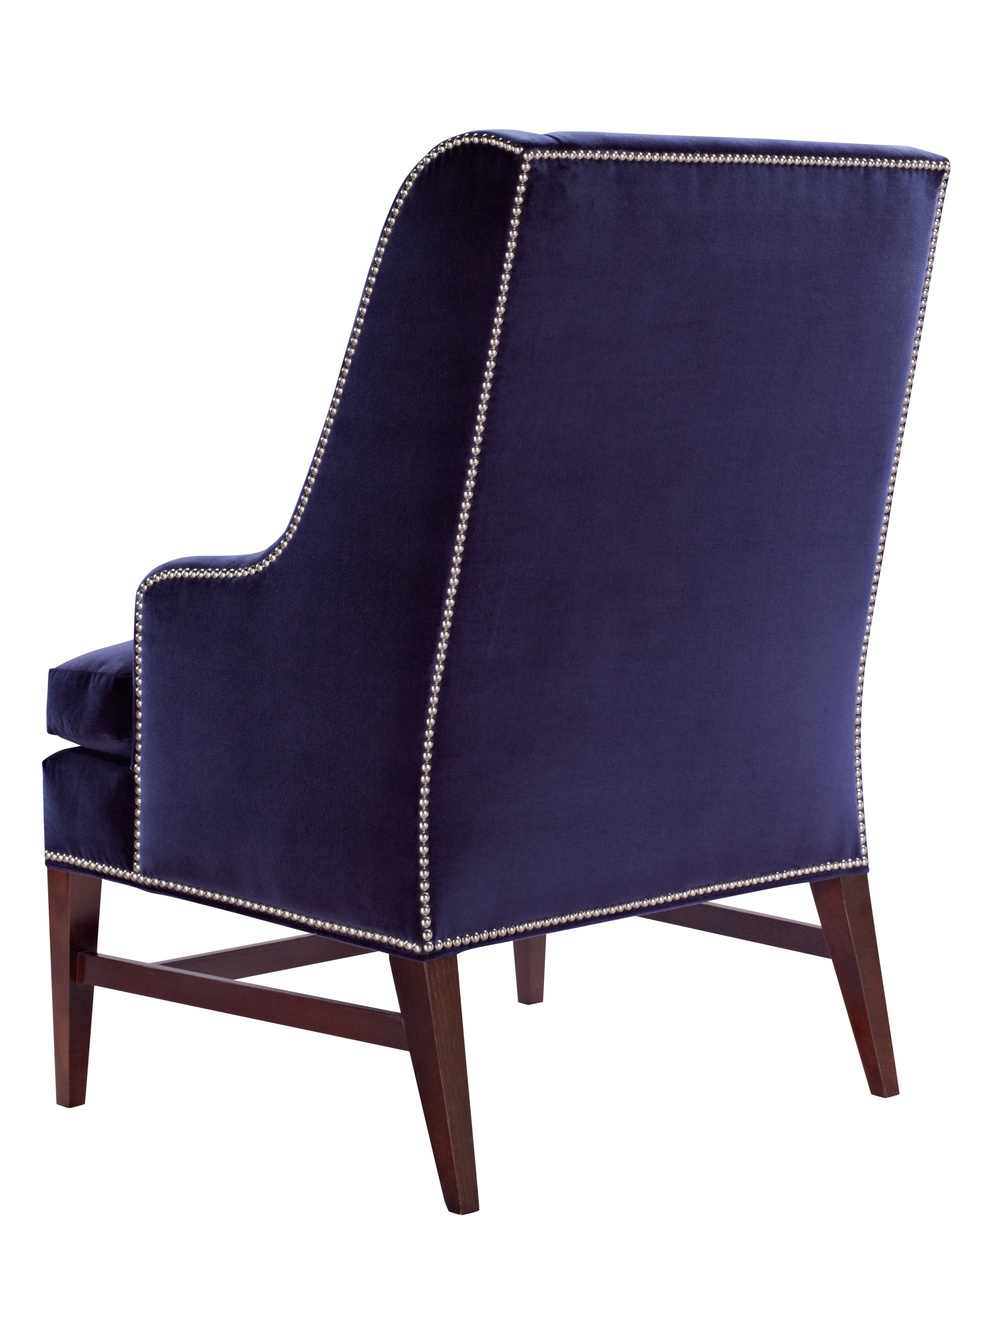 Hickory Chair - Martine Host Chair